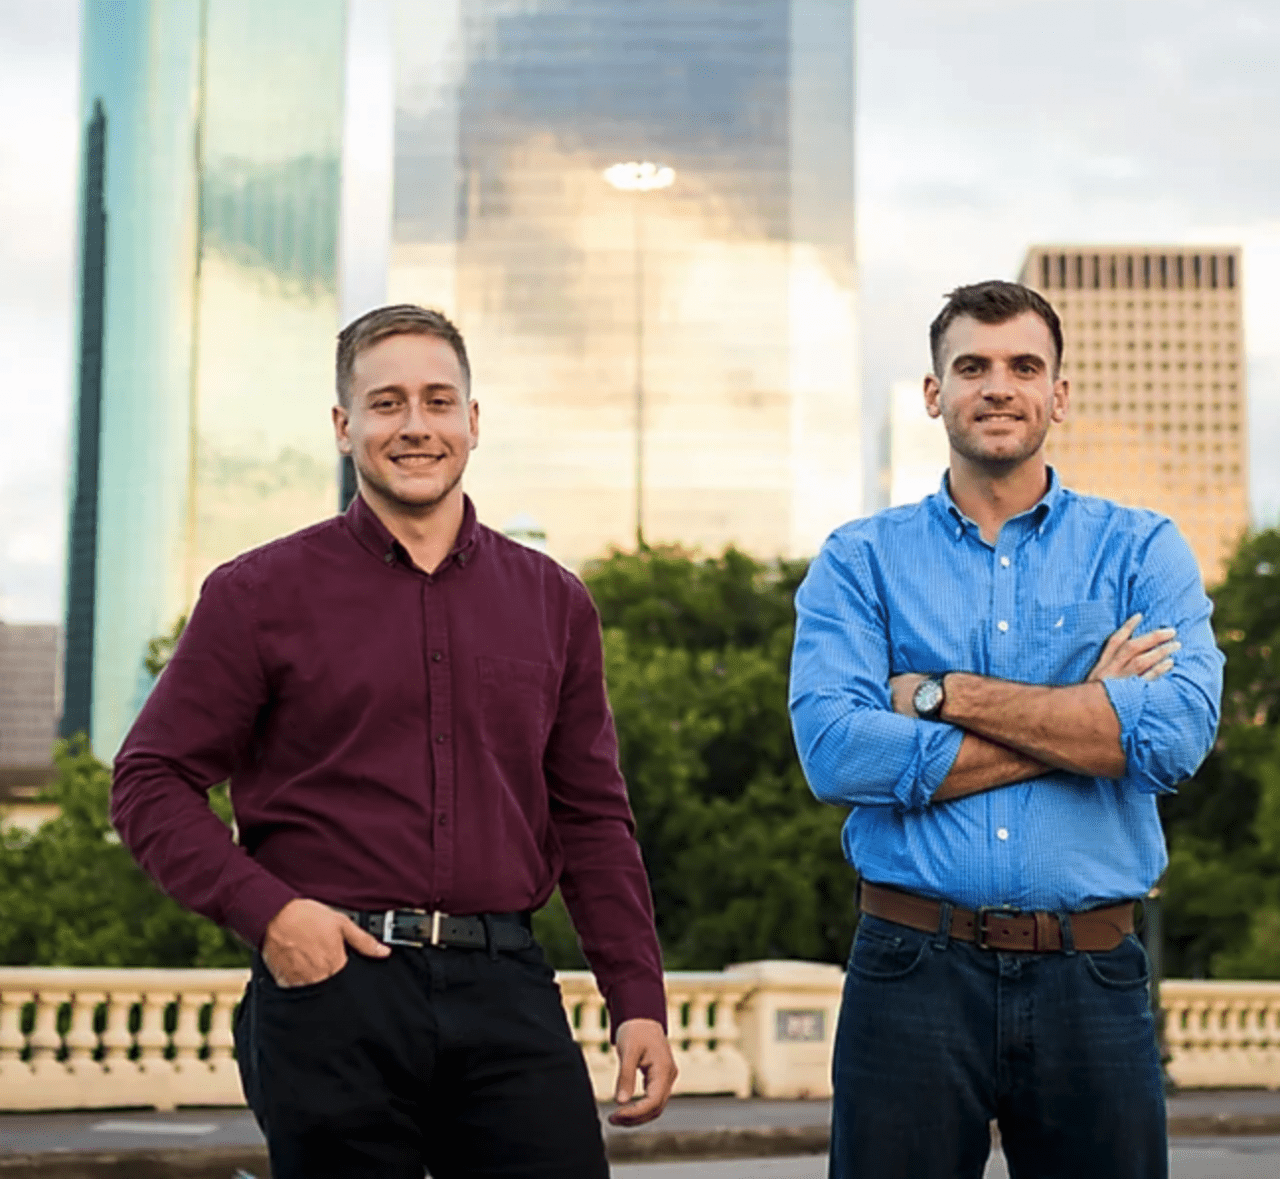 https://tpopros.com/wp-content/uploads/2020/06/tpo-pros-owners-houston-tx-roofing-company-1280x1179.png